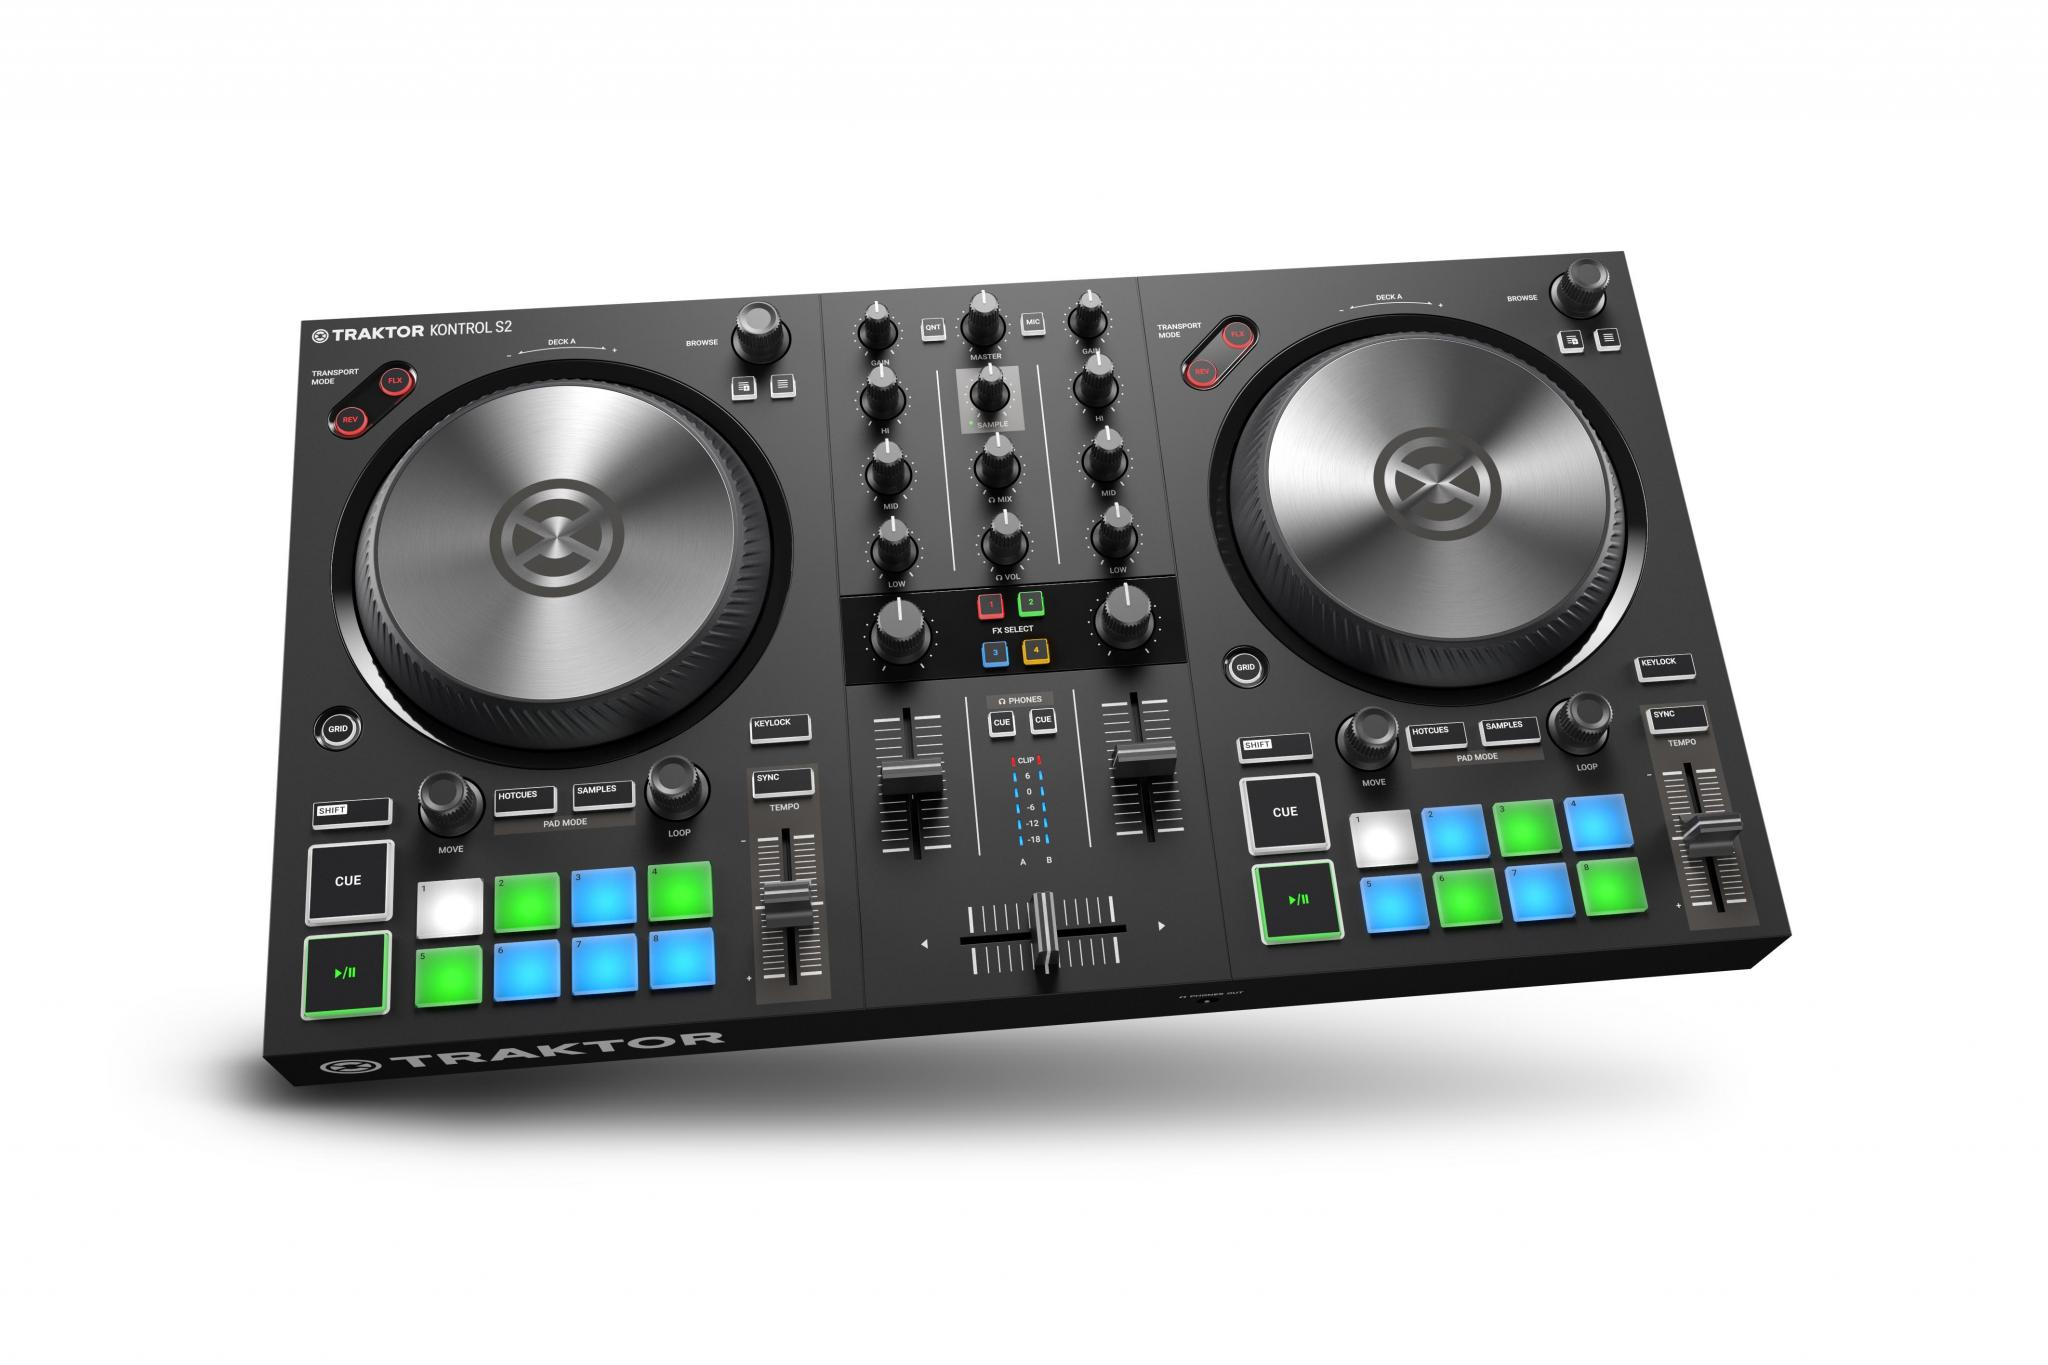 The small and perfectly formed Traktor Kontrol S2 MK3 | DJWORX